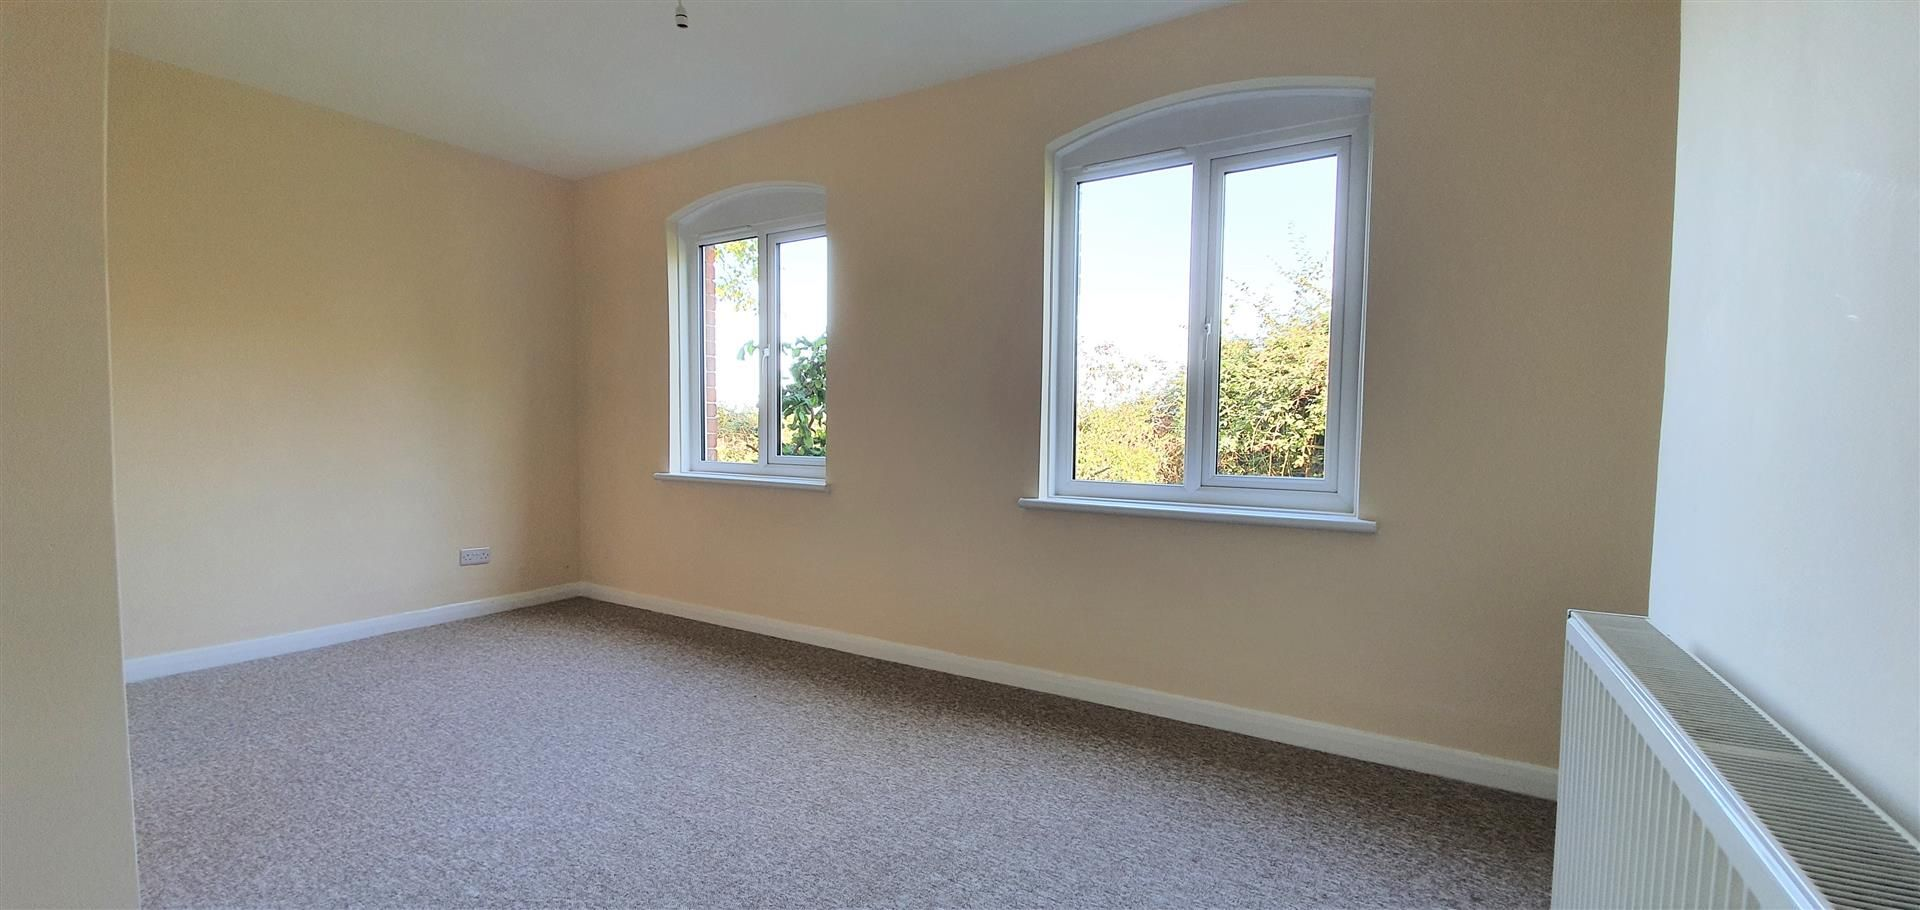 4 bed house to rent in Breinton 6